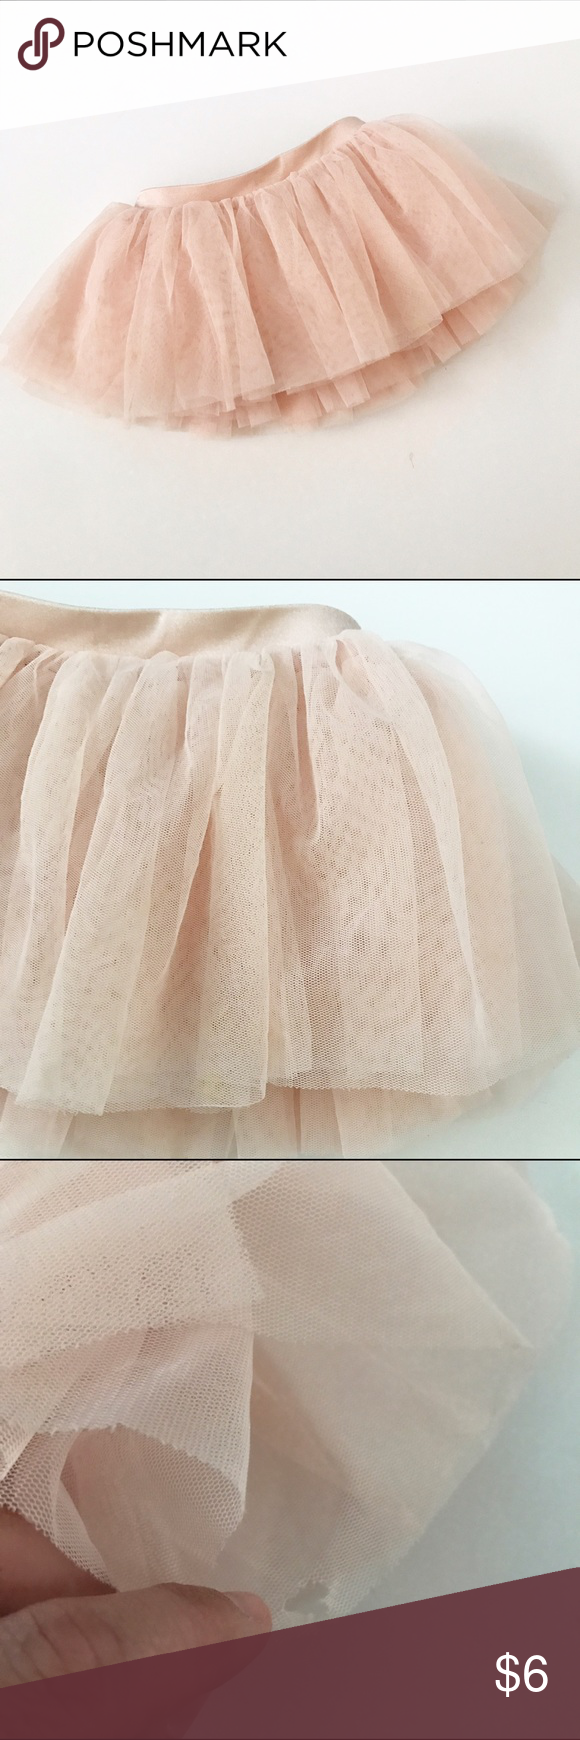 🎉SOLD🎉Bloch pink ballet Tutu Gently used in overall good condition, but does have a little tear in the back as shown. Could easily be cut and not noticeable. Size 2/4 years. Bloch Bottoms Skirts